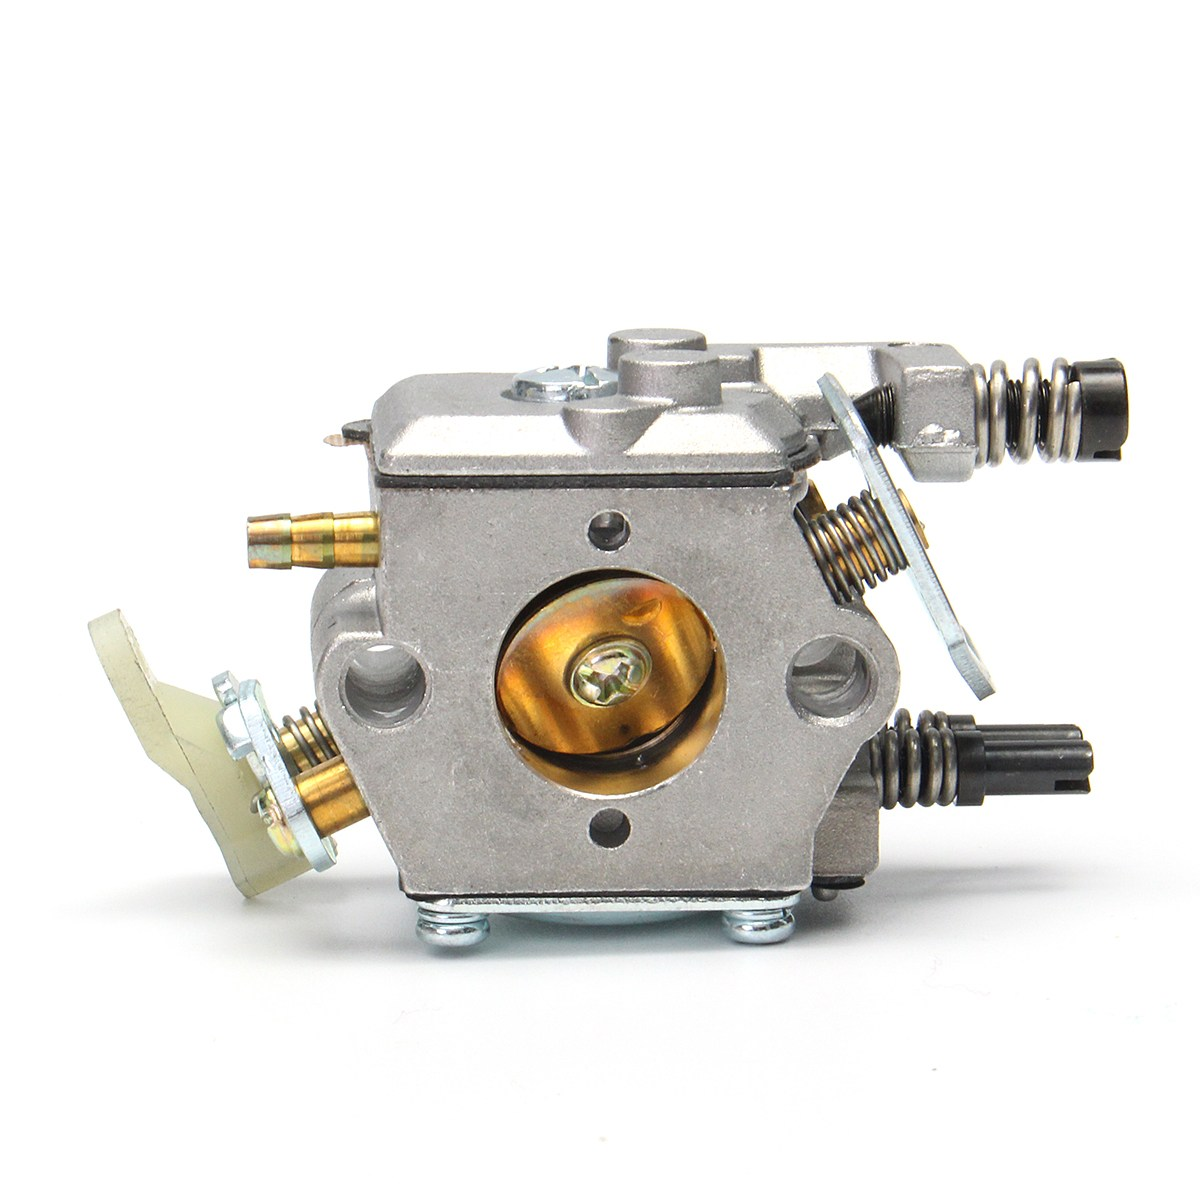 Товар New Arrival Metal Carburetor Air Fuel Filter Kit With Lgnition Coil  Fuel Line For HUSQVARNA 51 55 -